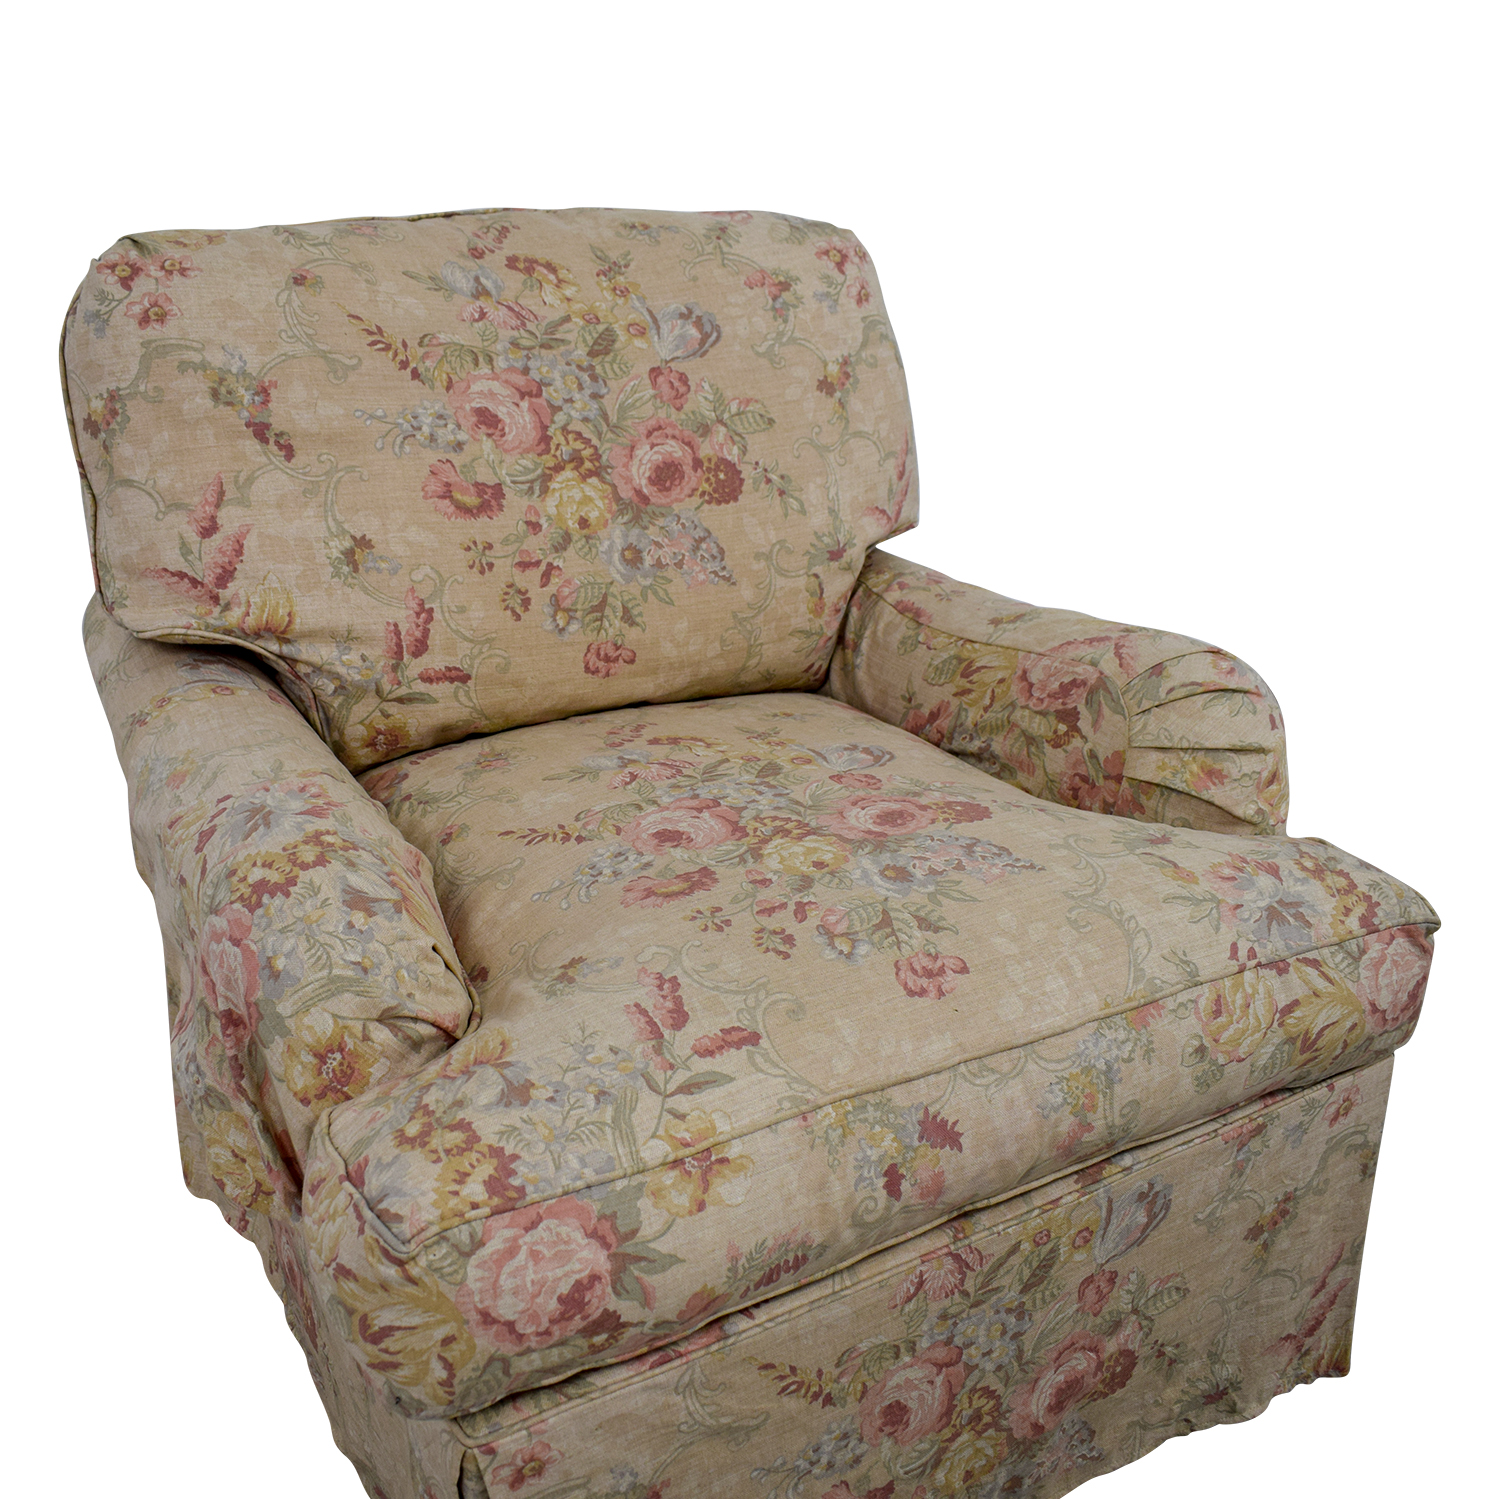 Floral Accent Chairs.90 Off Domain Domain Beige And Pink Floral Accent Chair Chairs